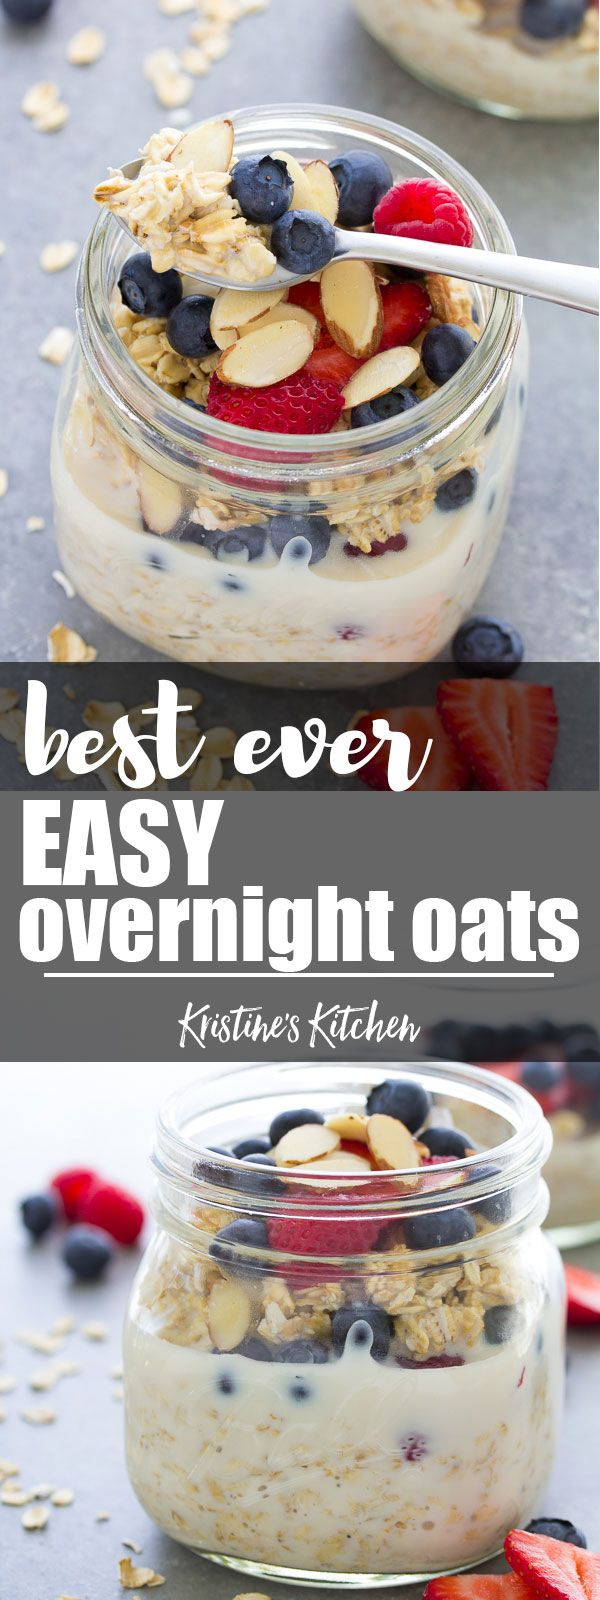 Our favorite easy overnight oats recipe, made with just 4 ingredients and a touch of vanilla. We love this healthy oatmeal topped with fresh berries and almonds! #overnightoats #breakfast #breakfastrecipes #healthyeating #oatmeal #mealprep